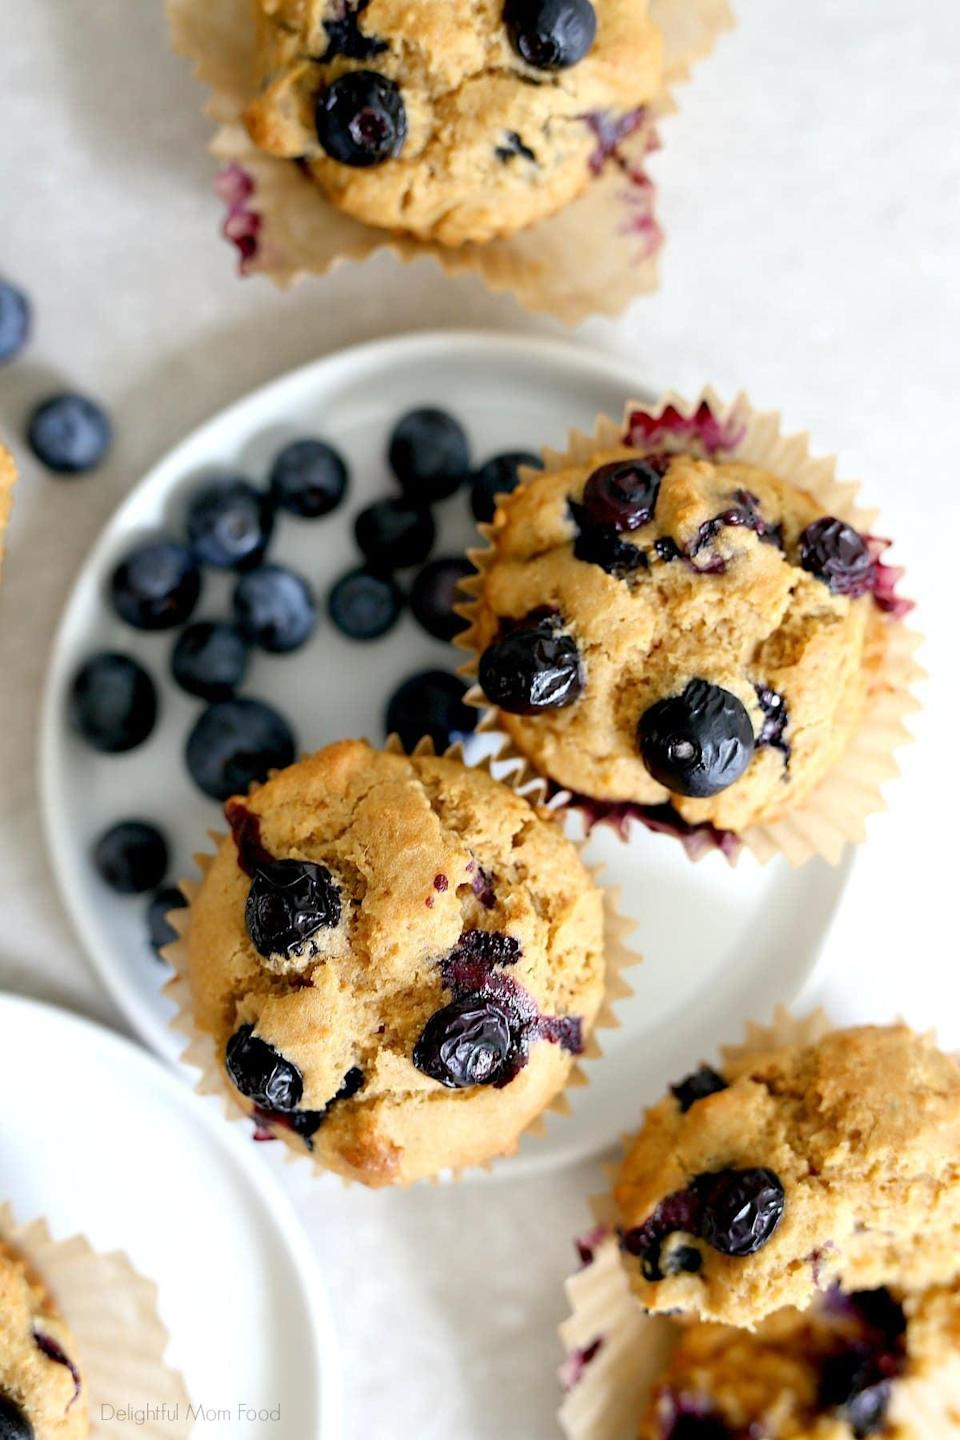 """<p>Your kids will probably ask for seconds after they try Delightful Mom Food's <a href=""""https://delightfulmomfood.com/blueberry-muffins/"""" class=""""link rapid-noclick-resp"""" rel=""""nofollow noopener"""" target=""""_blank"""" data-ylk=""""slk:gluten-free blueberry muffins"""">gluten-free blueberry muffins</a>. Fresh blueberries add a burst of flavor, applesauce makes them moist, and they're easy enough to whip up that the kids can help prep their own breakfast!</p>"""